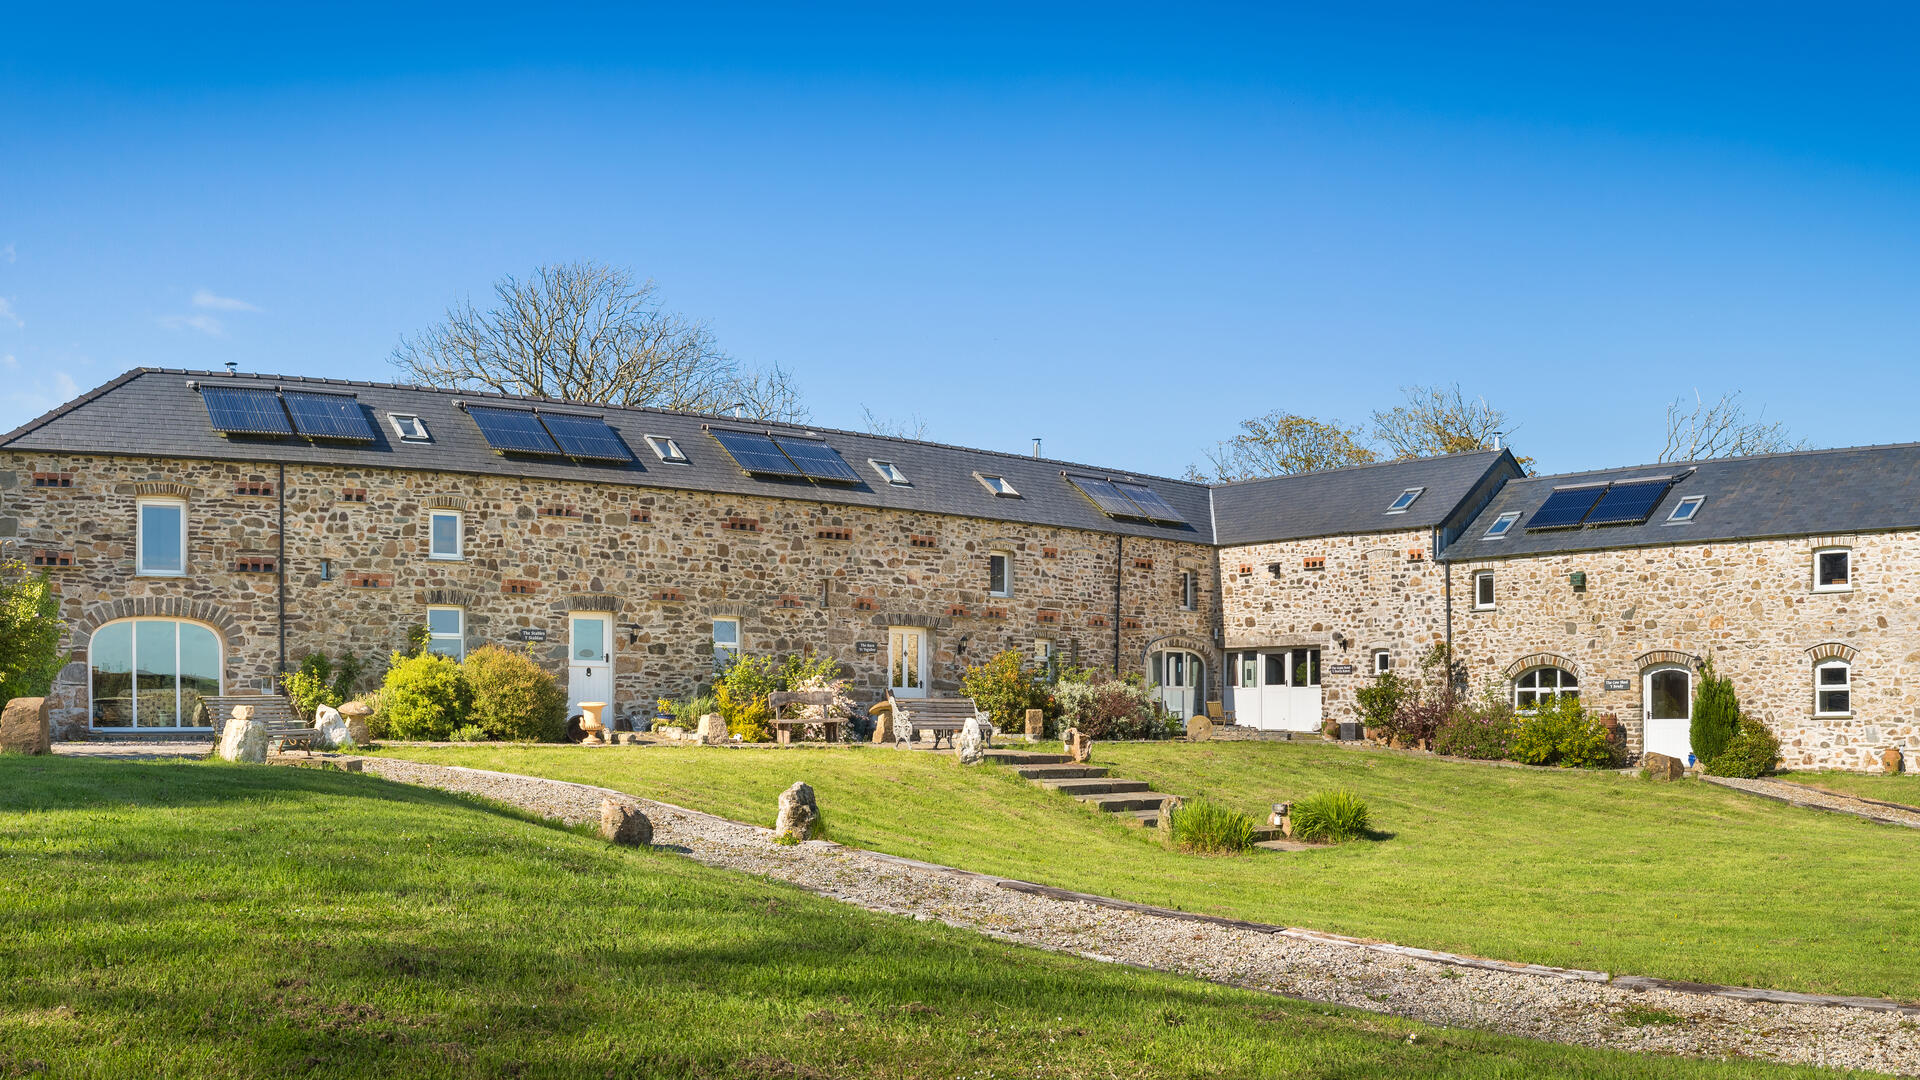 14 Bedroom Eco Cottage in Wales, United Kingdom